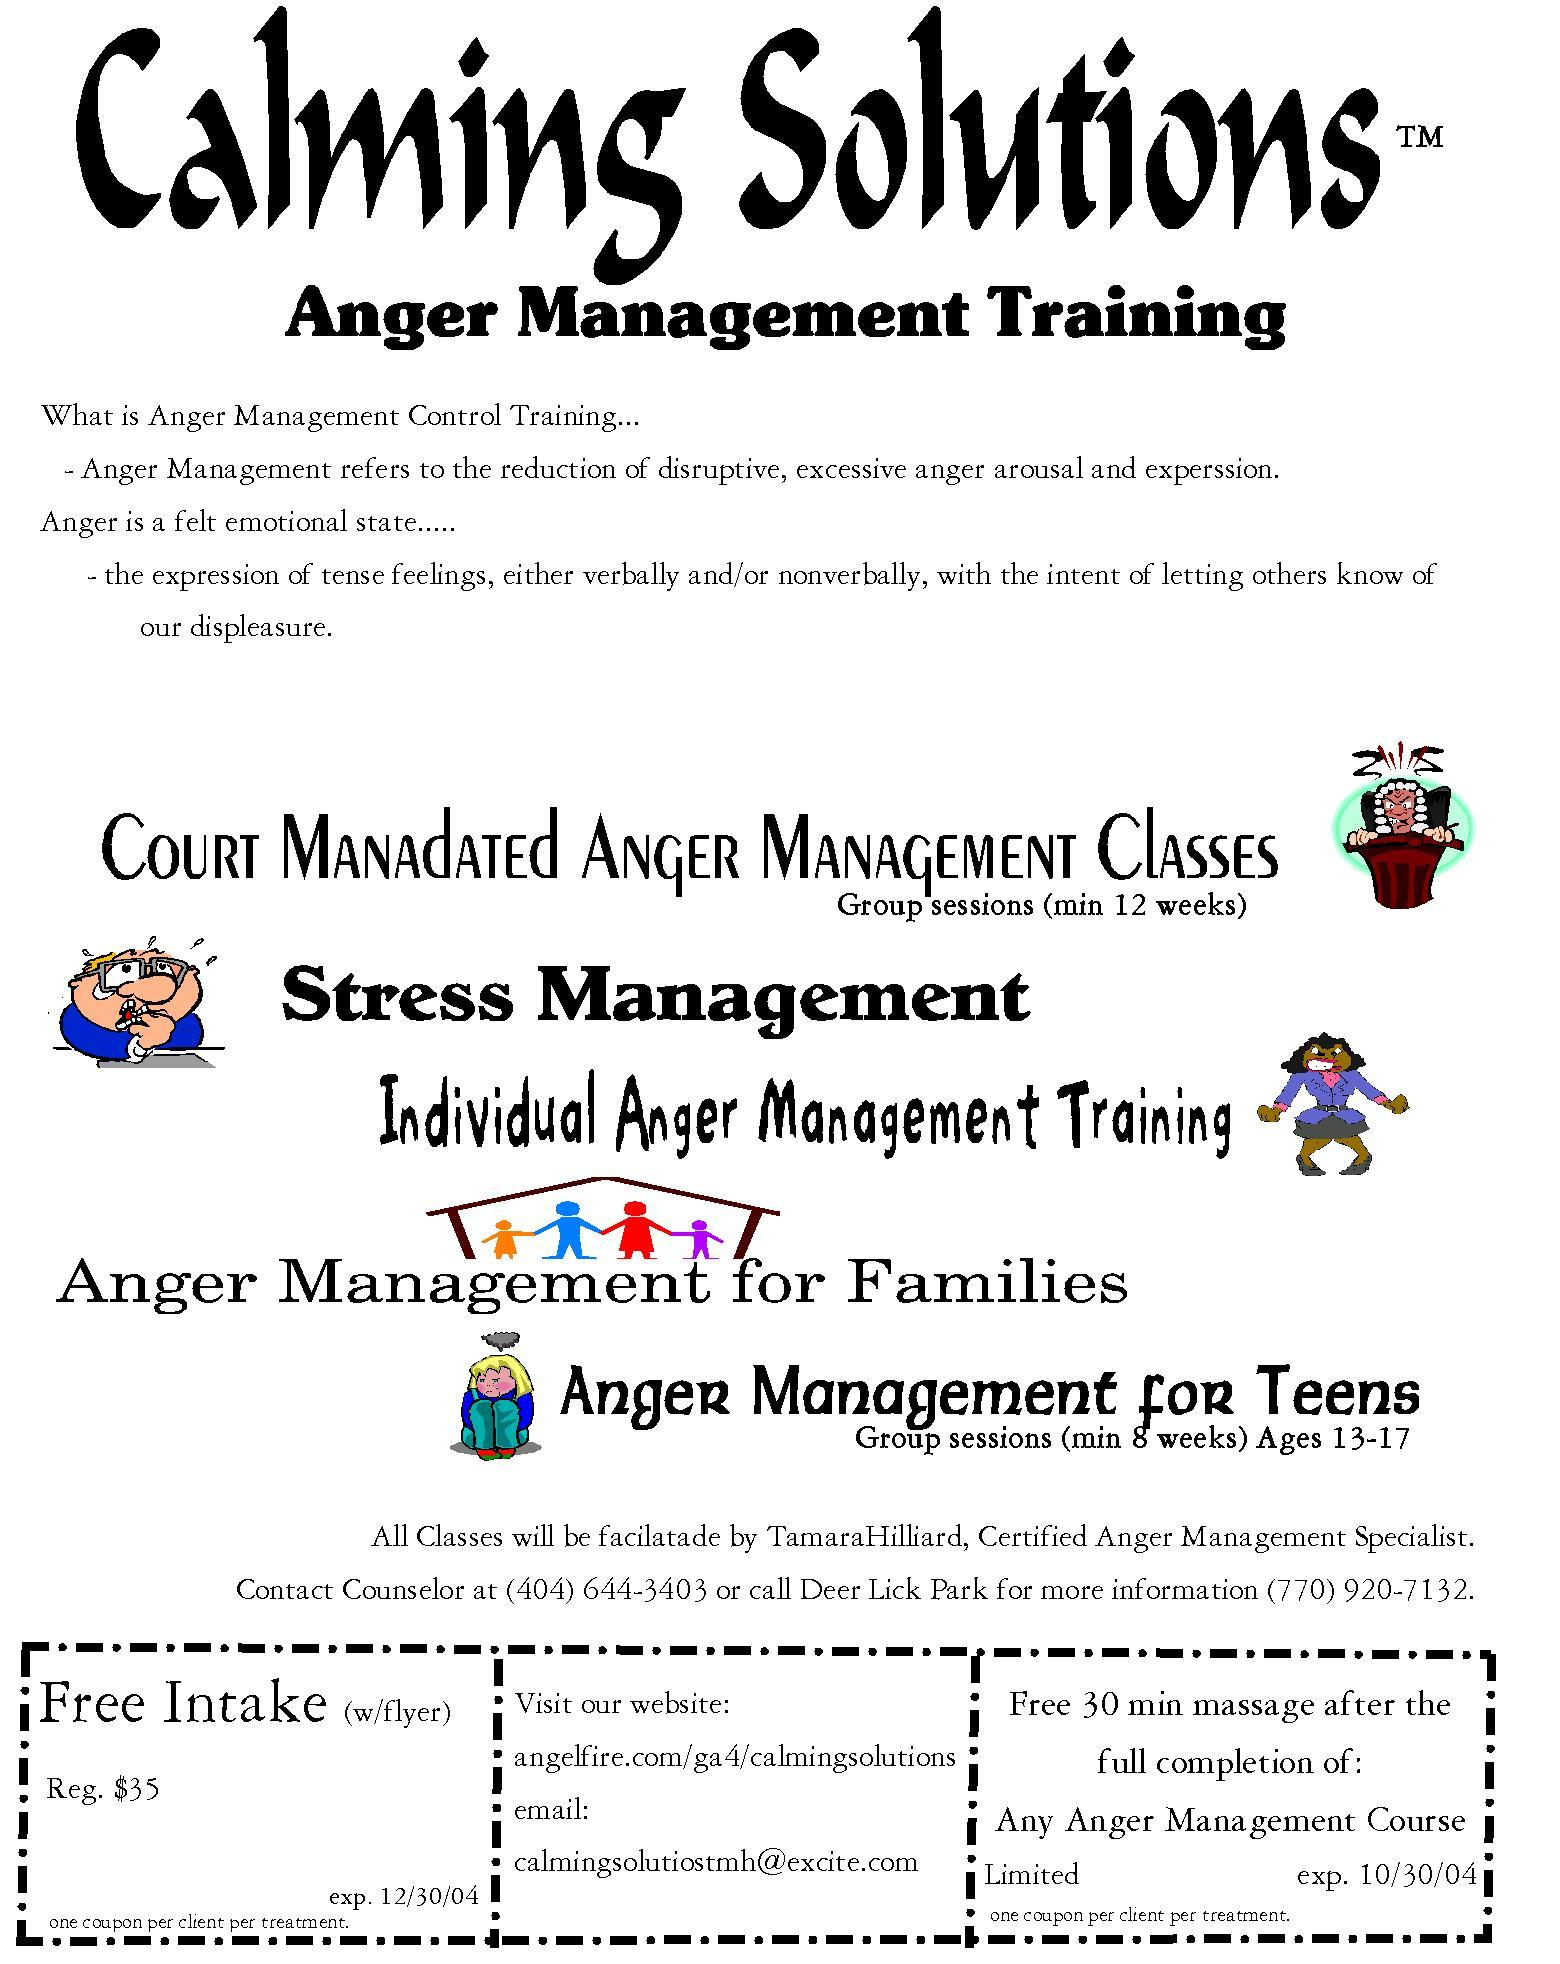 Calming Solutions Anger Management Skills Training Lithia